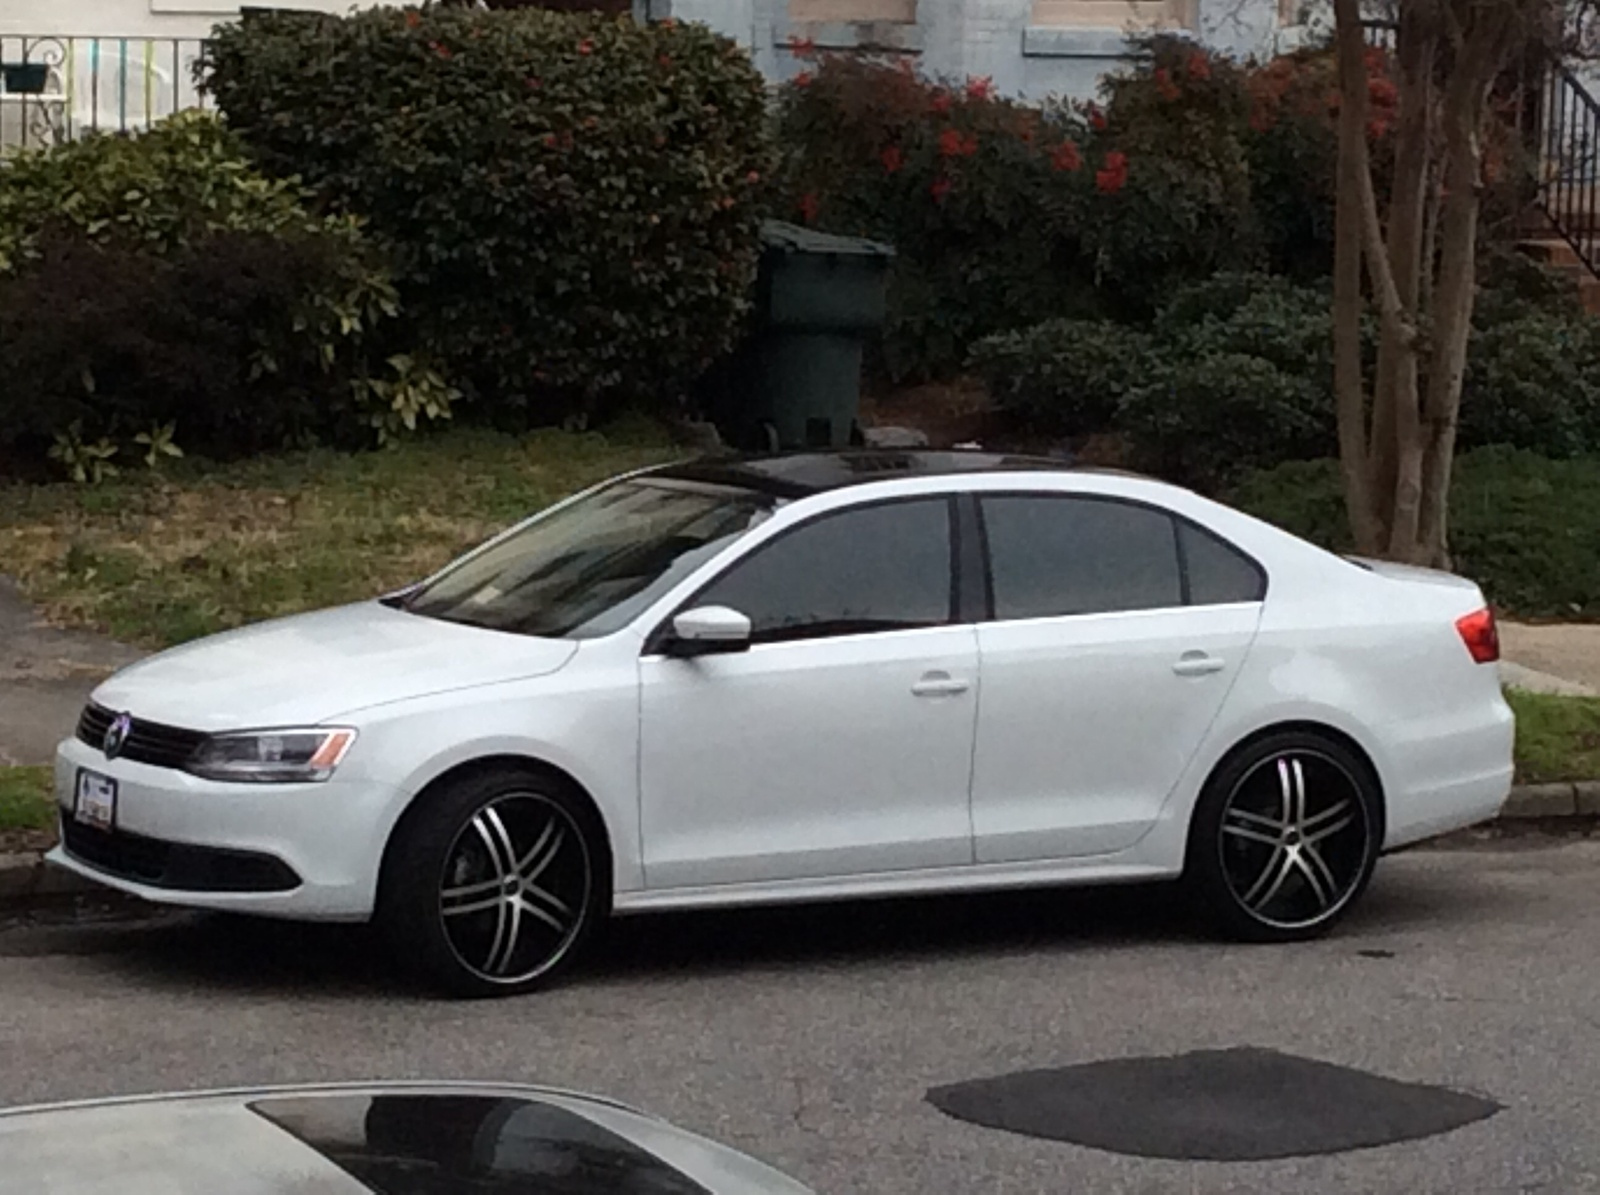 Volkswagen Jetta Questions 2014 Came With 20 Should I